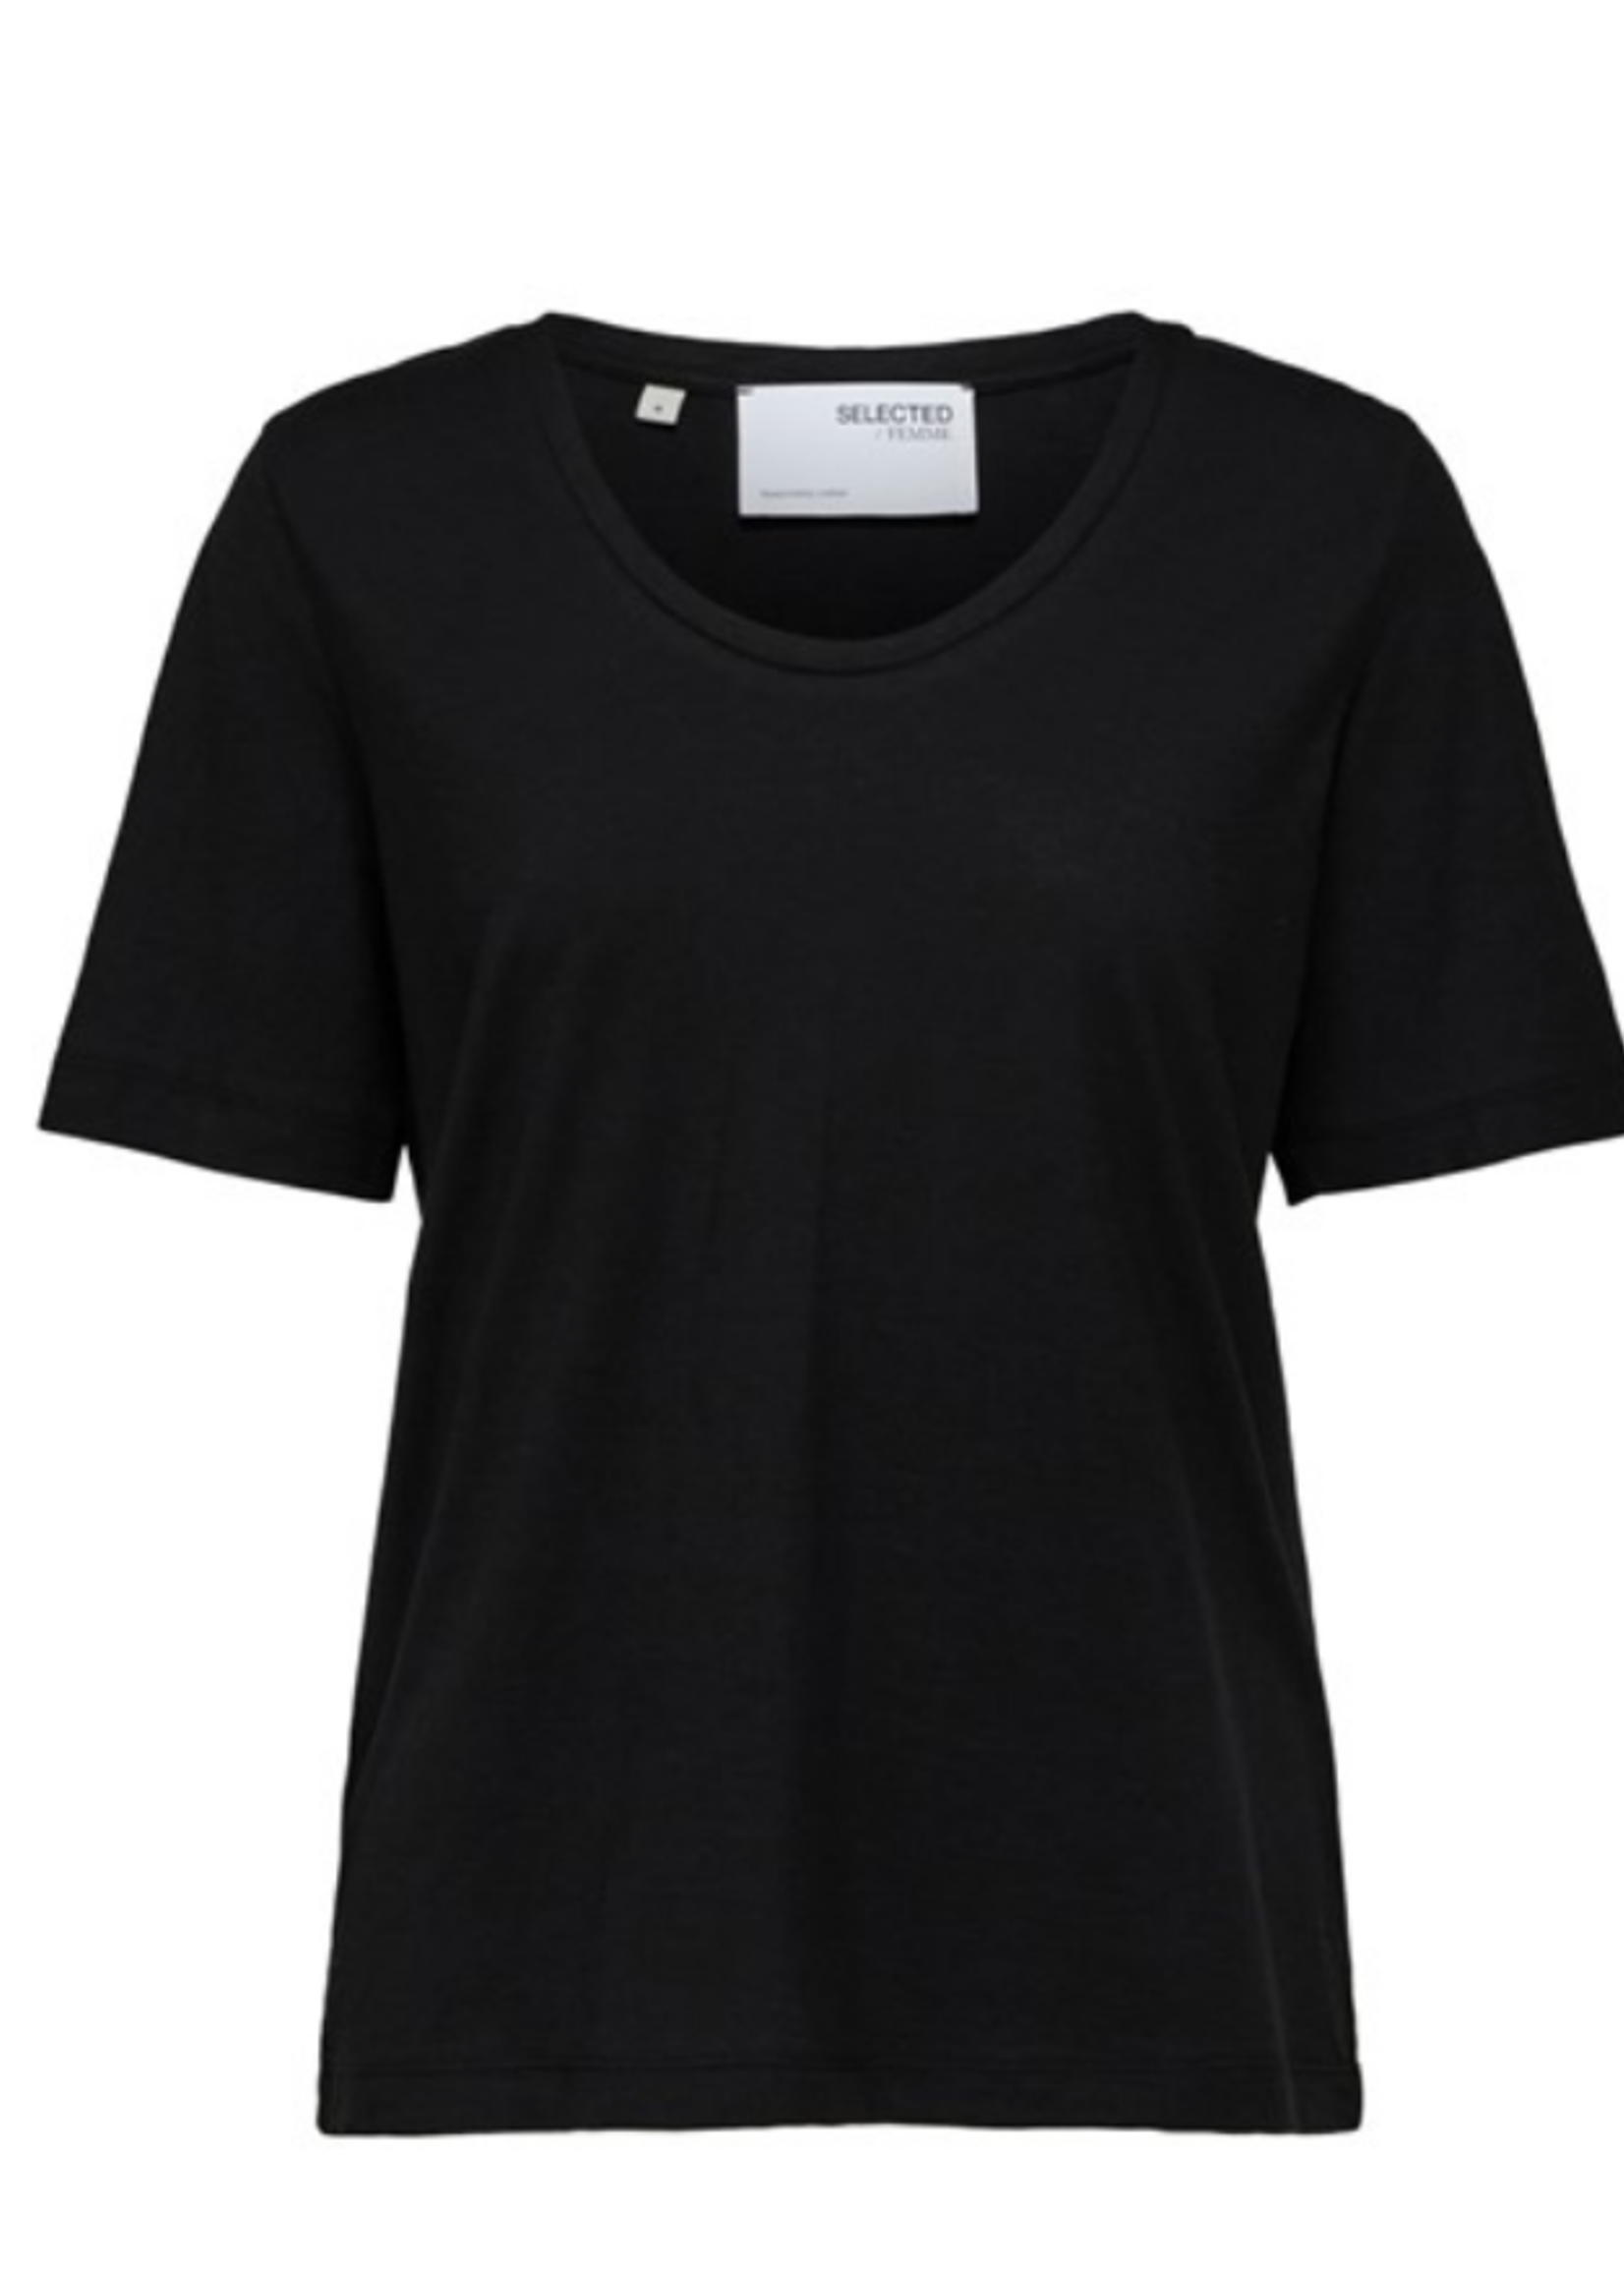 Selected Femme Belive tee